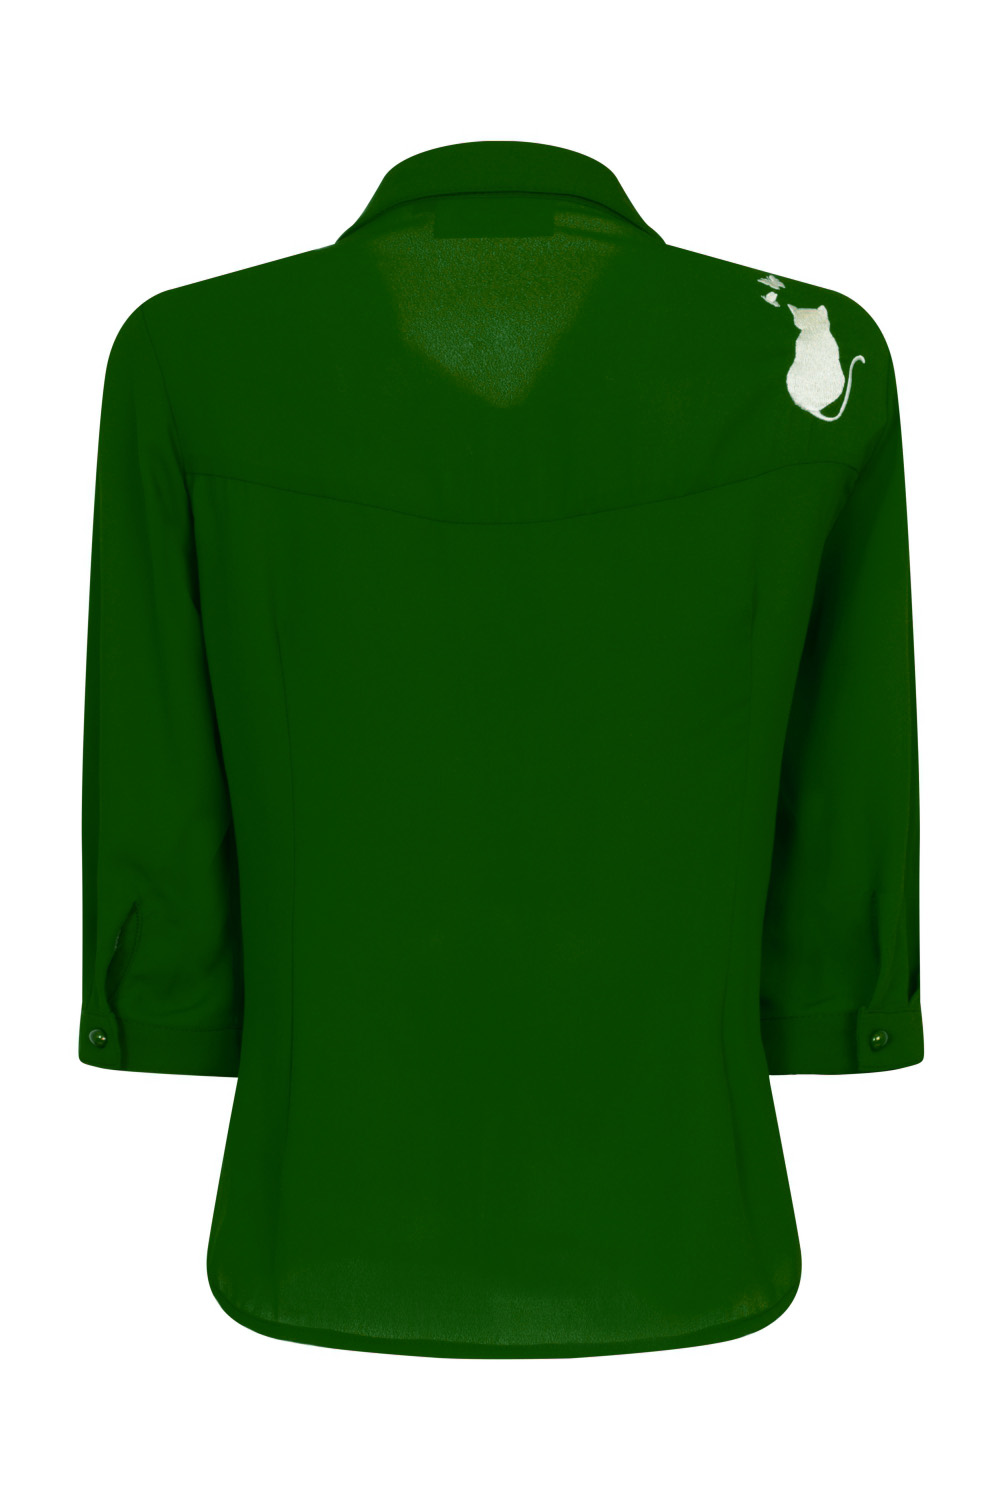 Banned Retro 60s Snowbird Blouse in Emerald